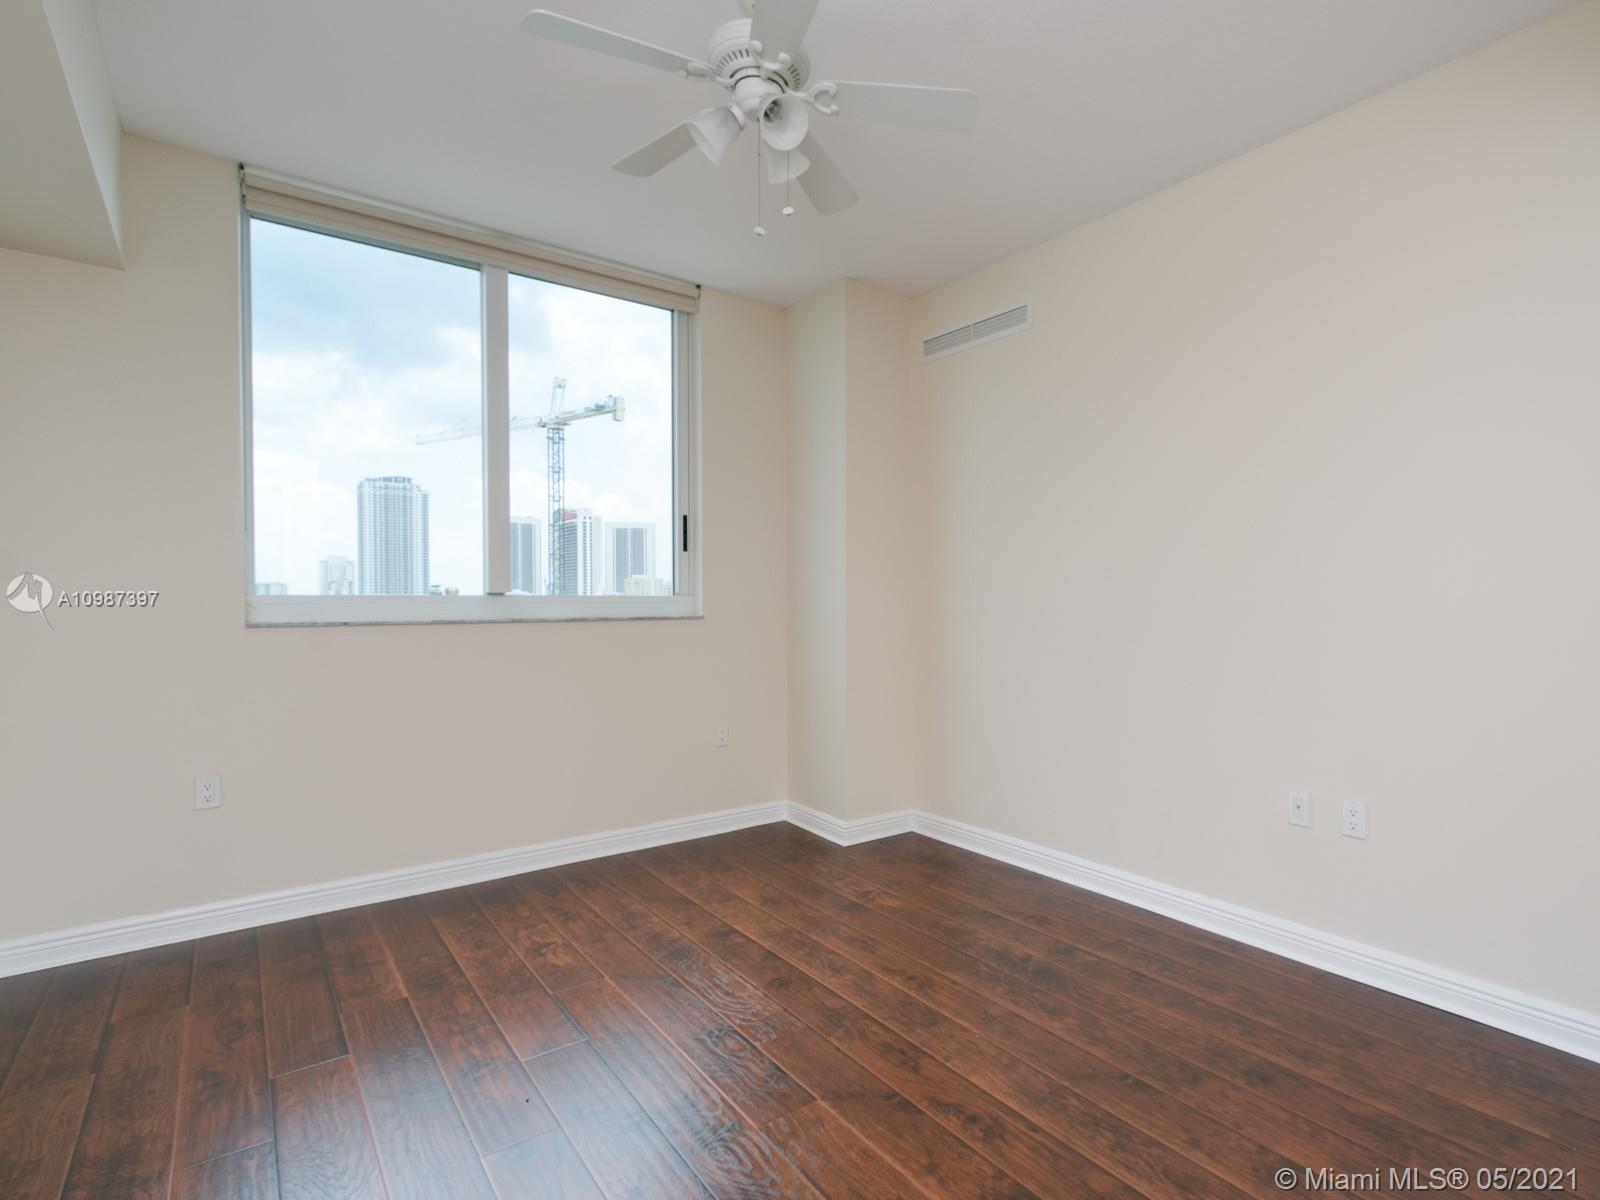 Photo of 1755 Hallandale Beach Blvd #706E, Hallandale Beach, Florida, 33009 -